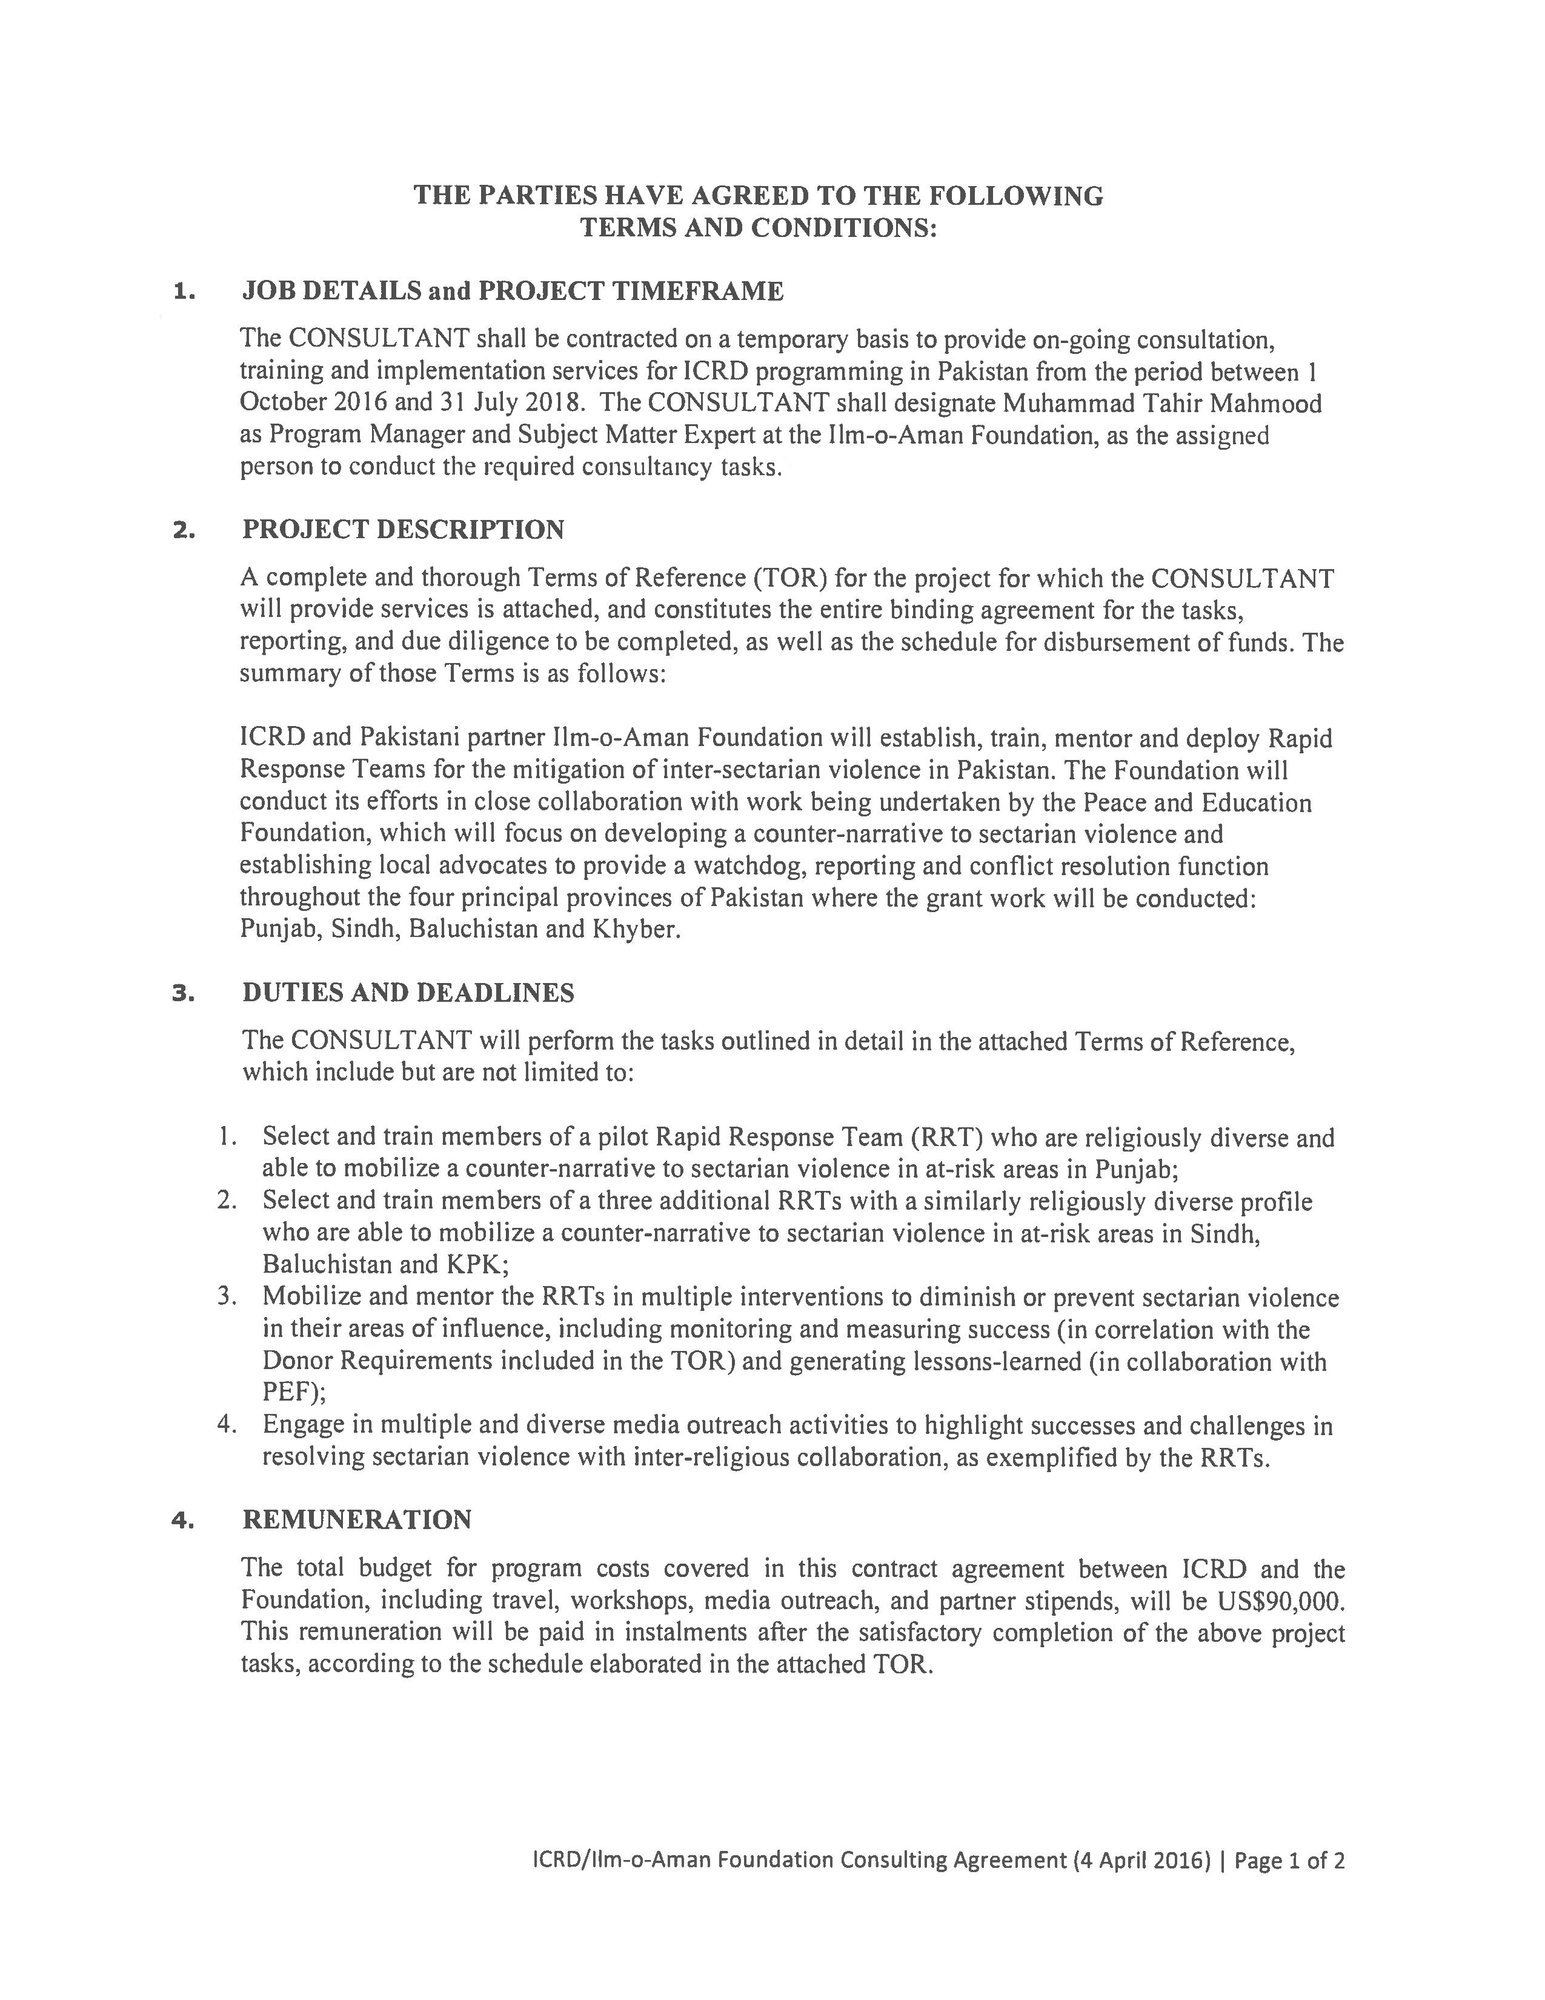 US contract for Ashrafi-page-002.jpg